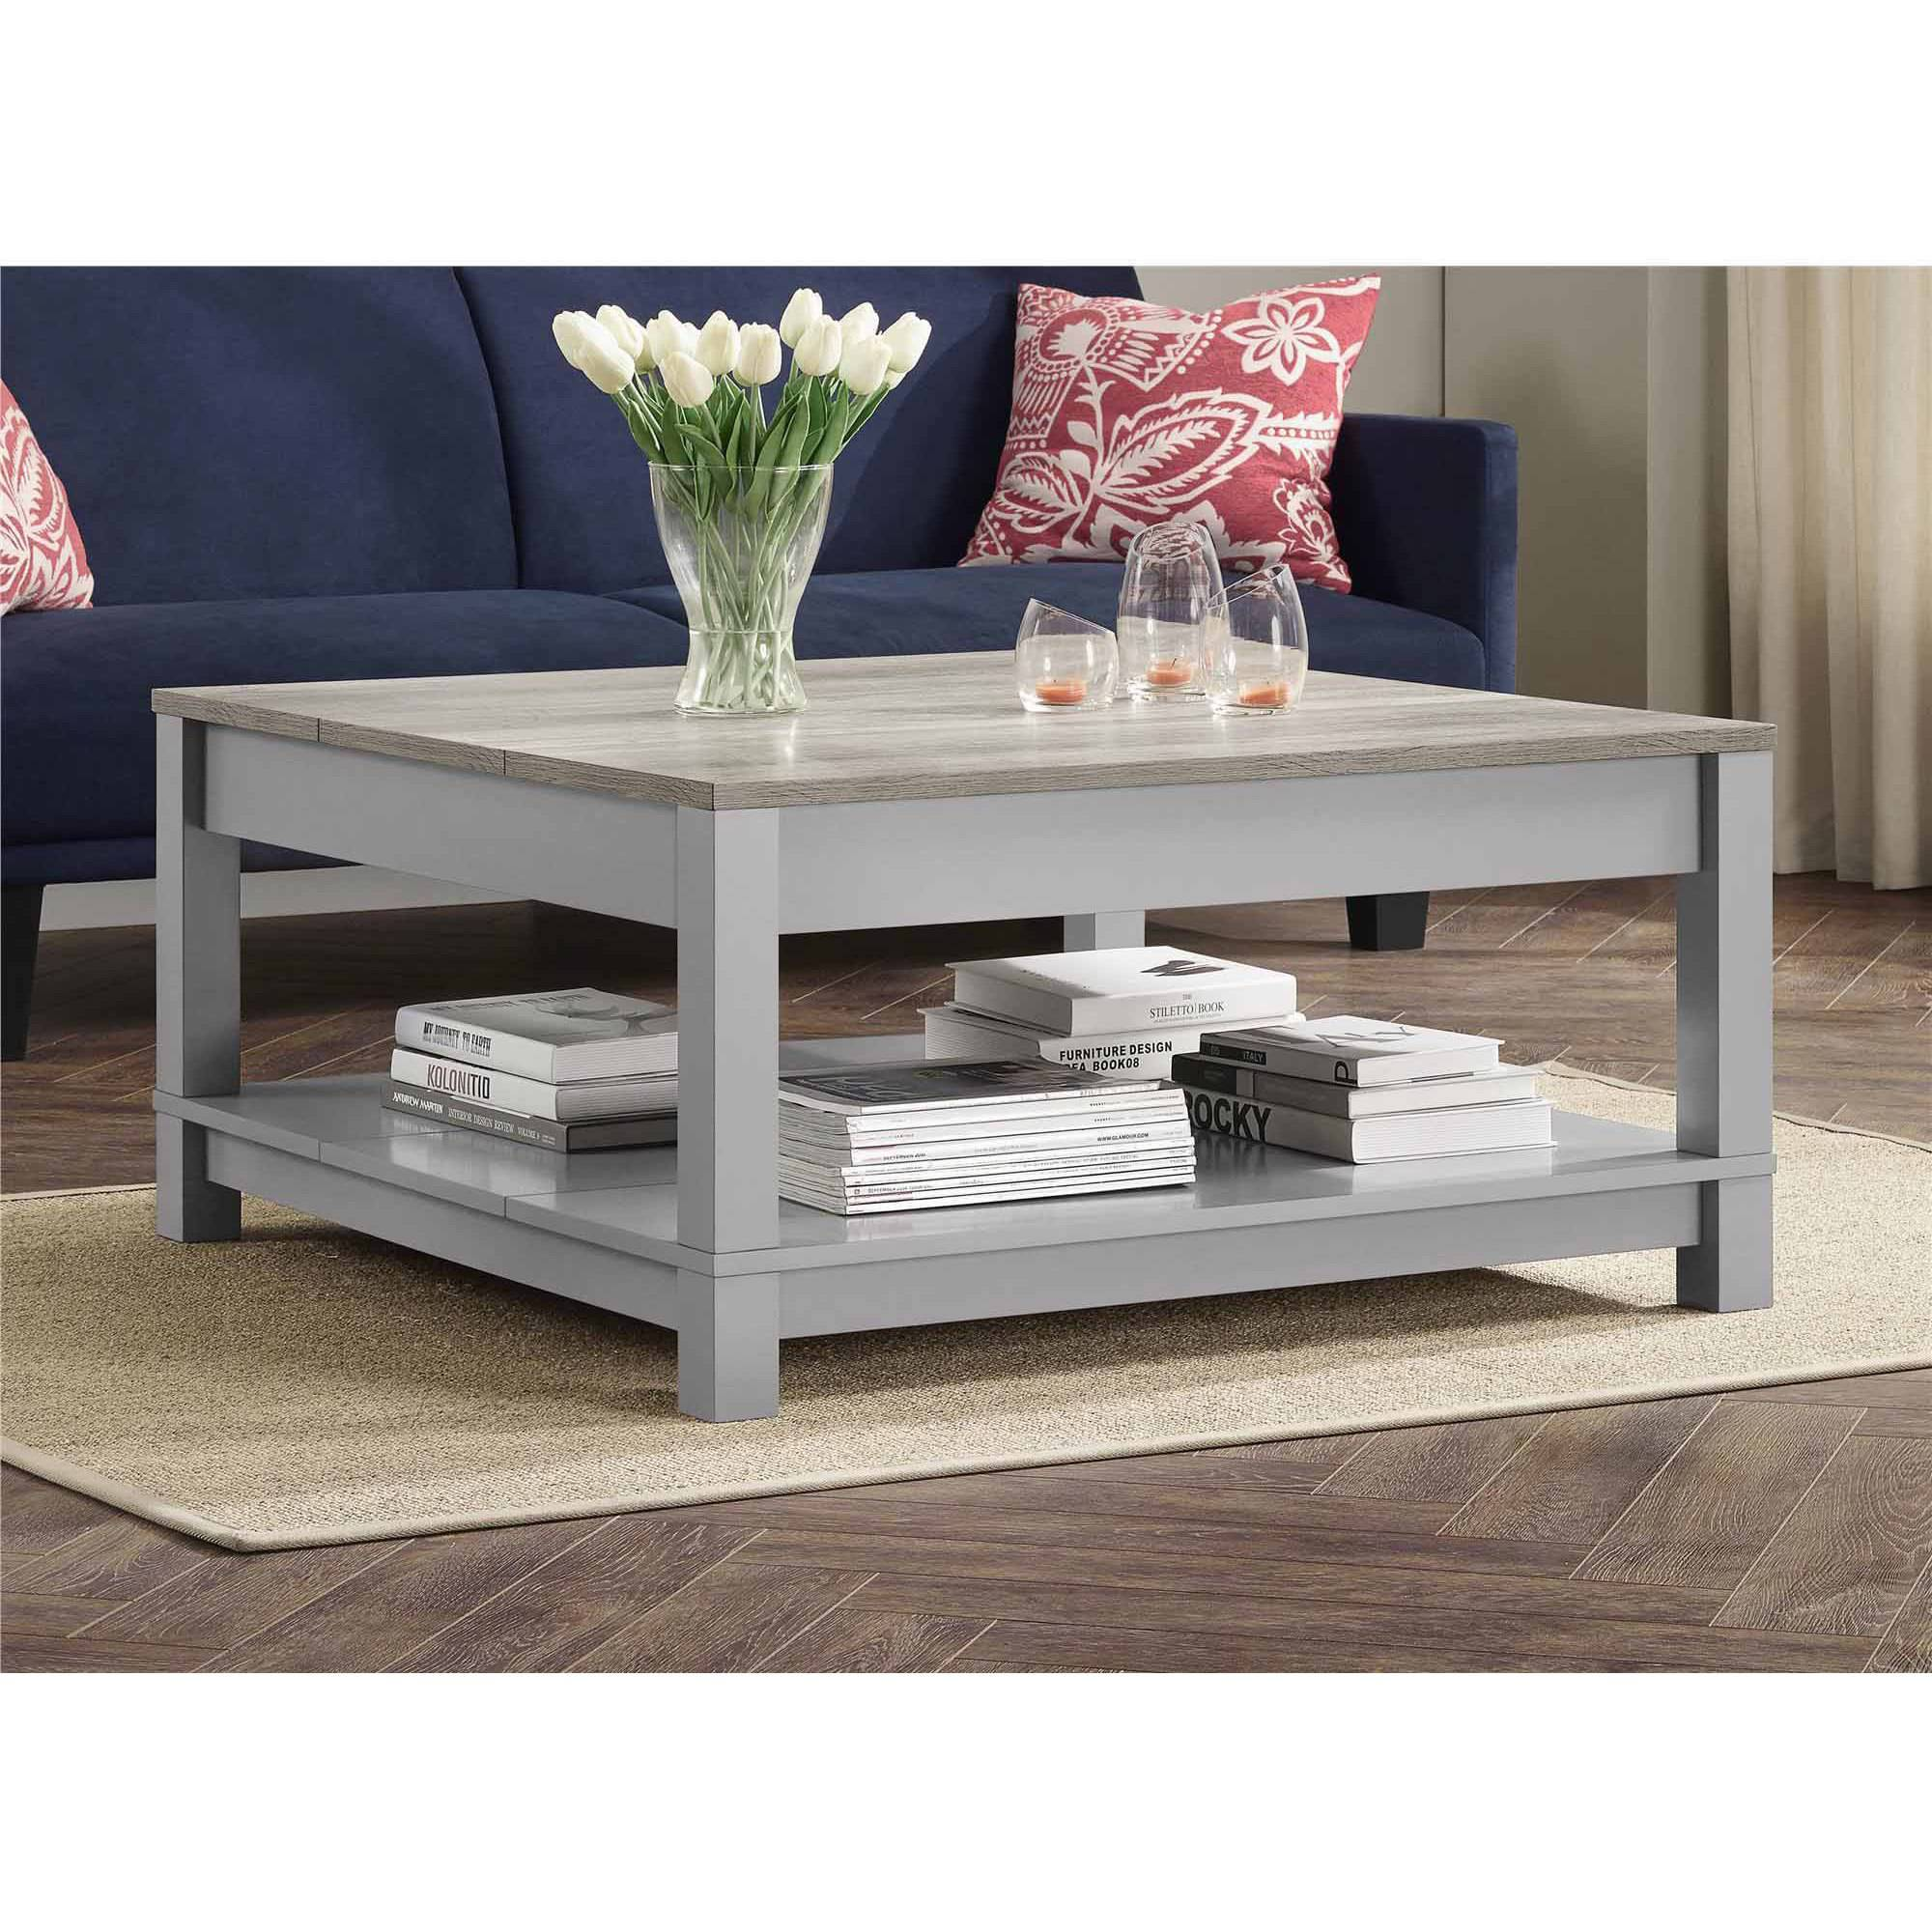 Fabulous Better Homes and Gardens Langley Bay Coffee Table Gray Sonoma Oak